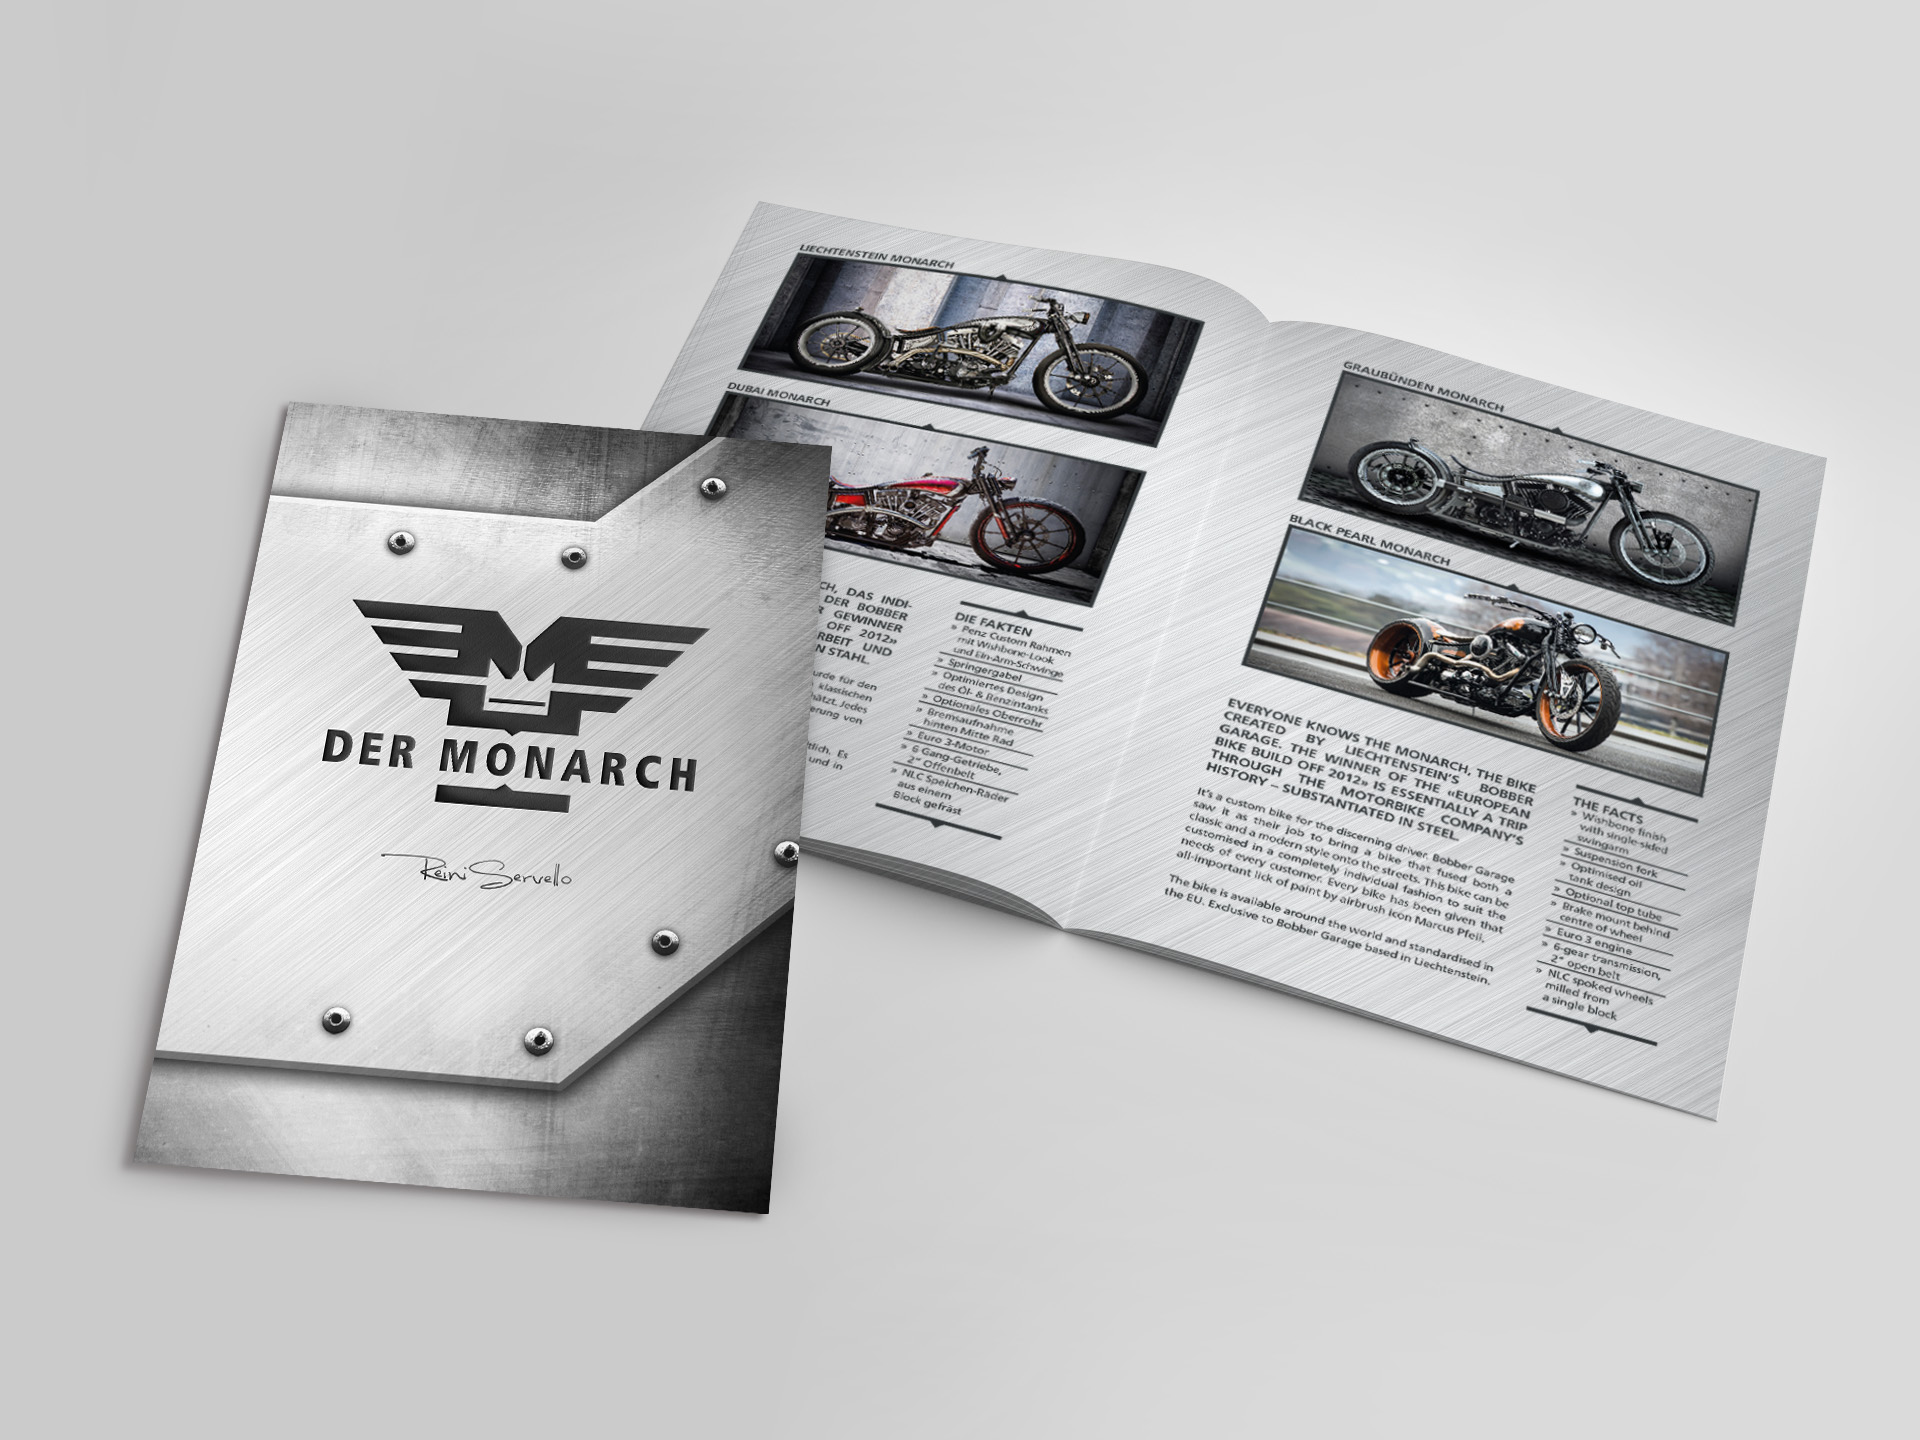 SM Graphic Design Referenzen Illustration Fotoretouche Layout Flyer Broschüre Imageflyer Falter Bobber Garage Liechtenstein Der Monarch Bike Harley Davidson Motorrad